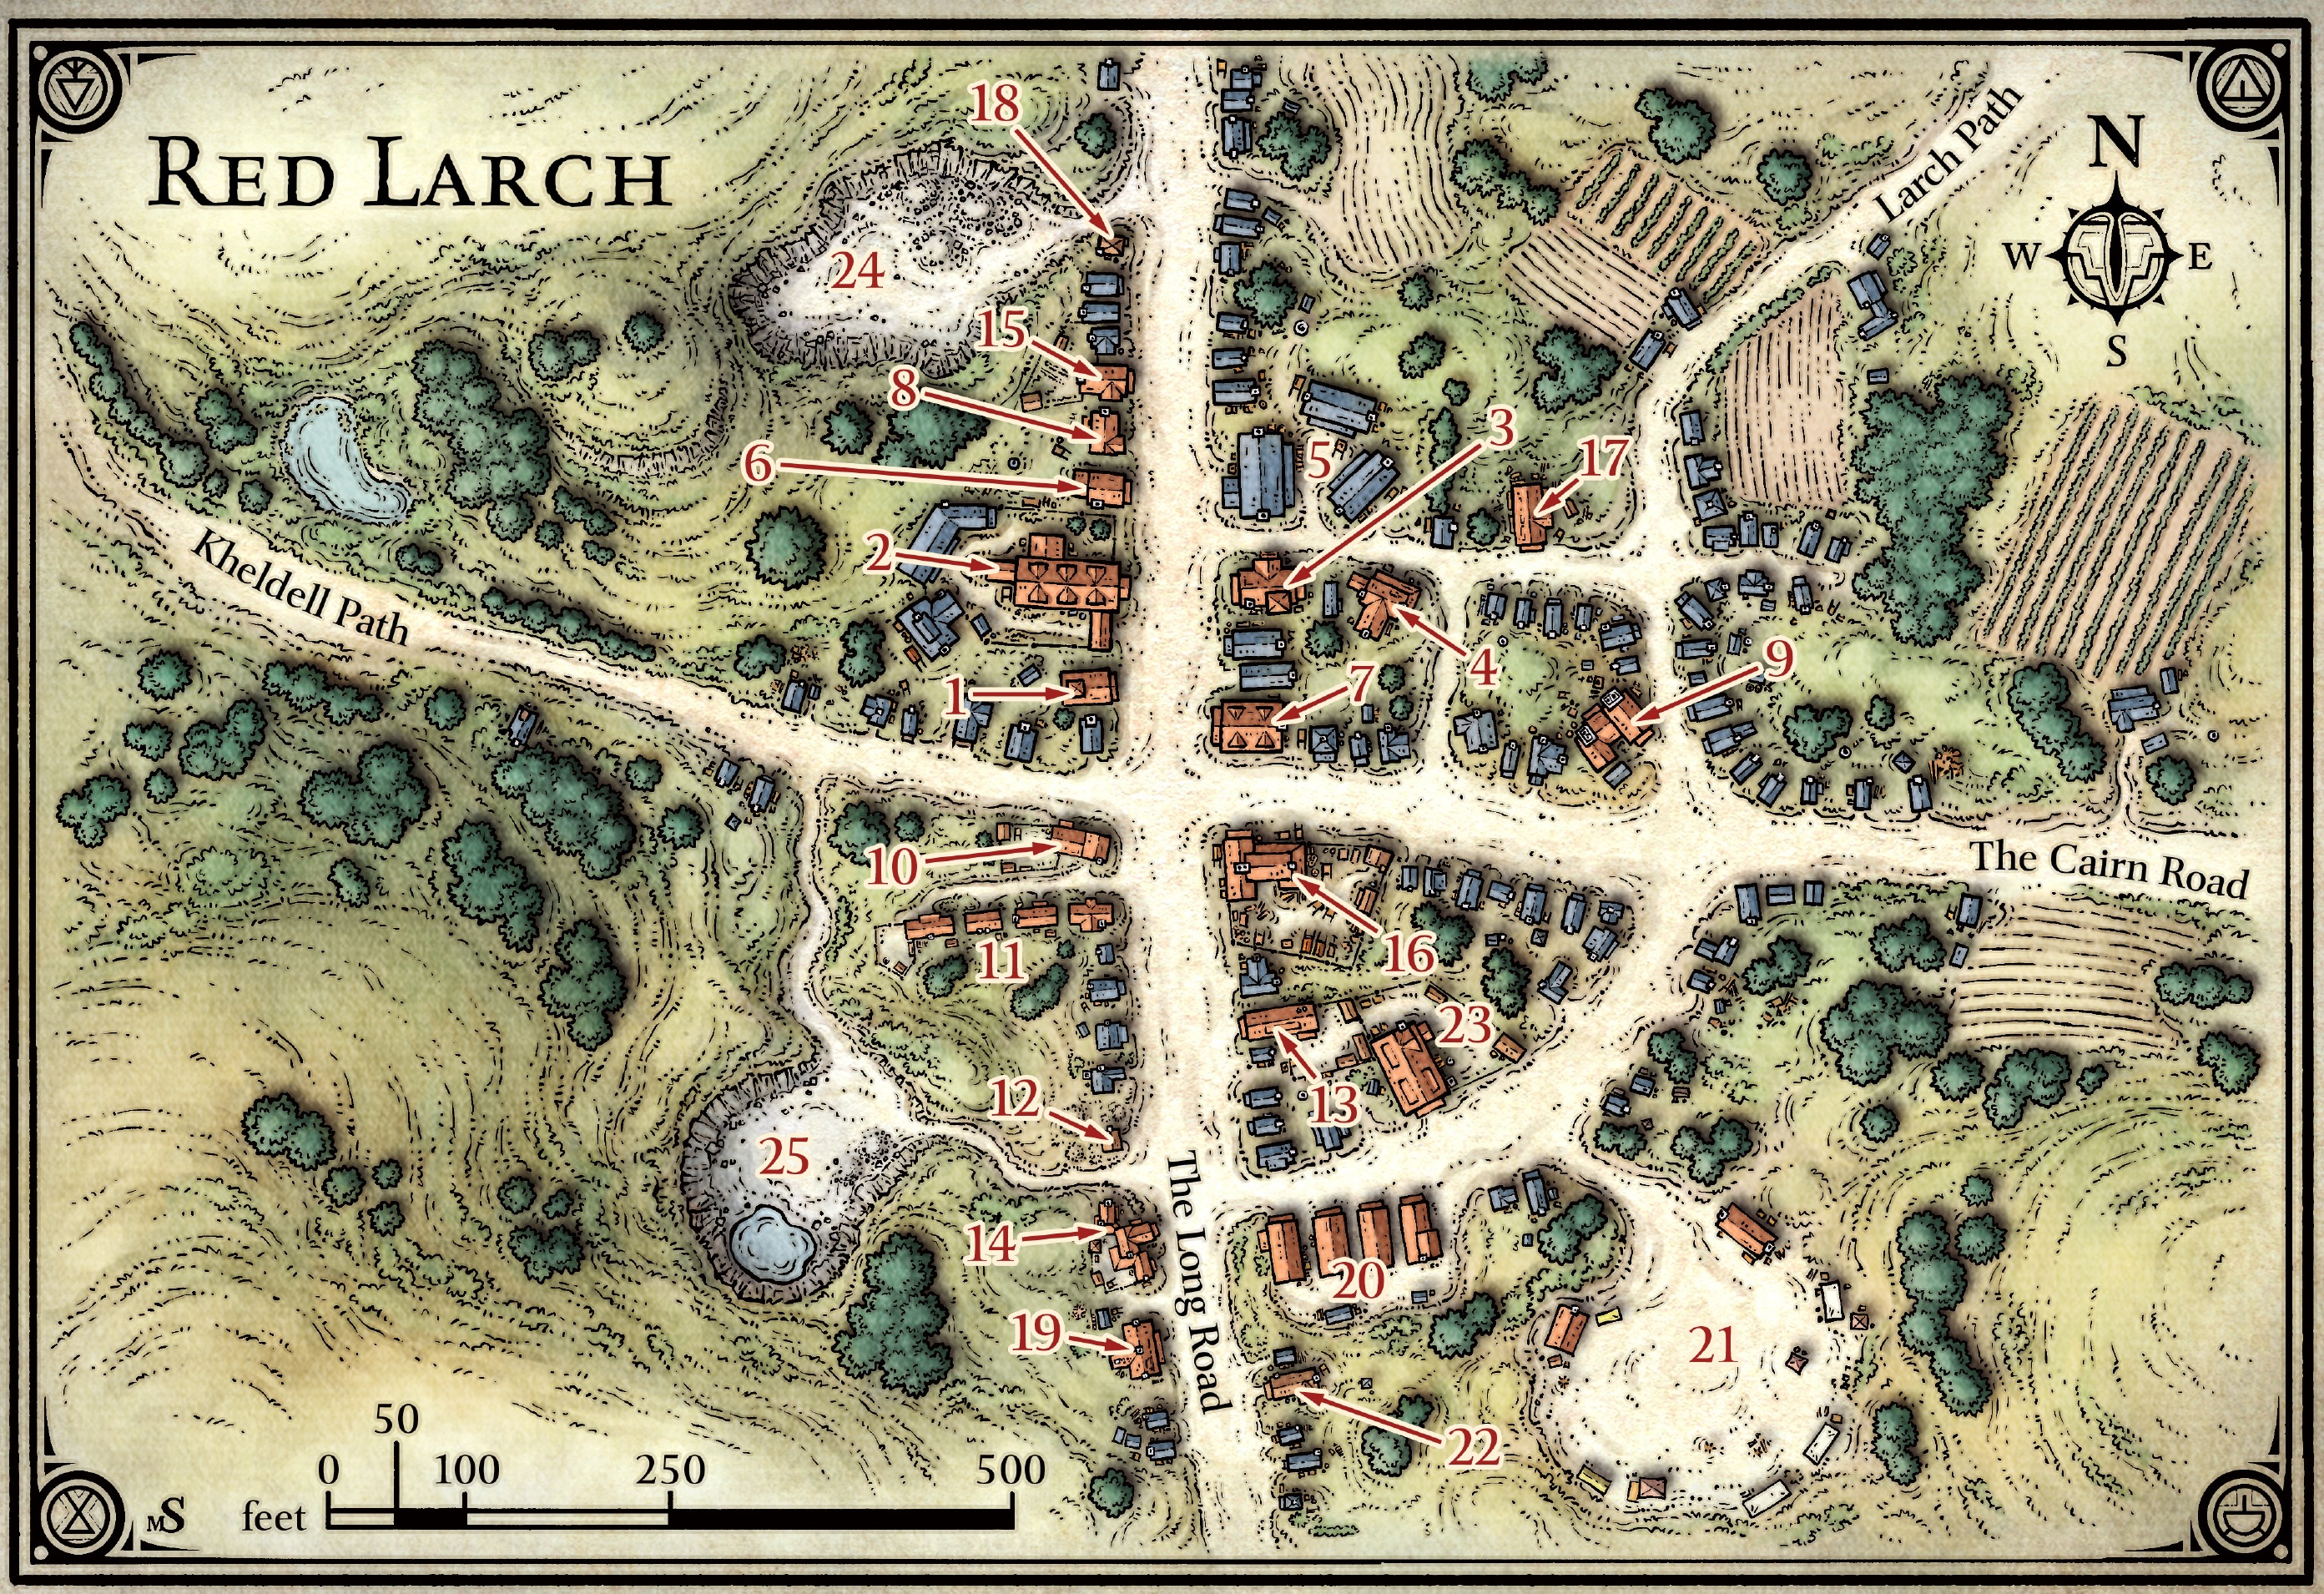 Red%20Larch%20town.jpg